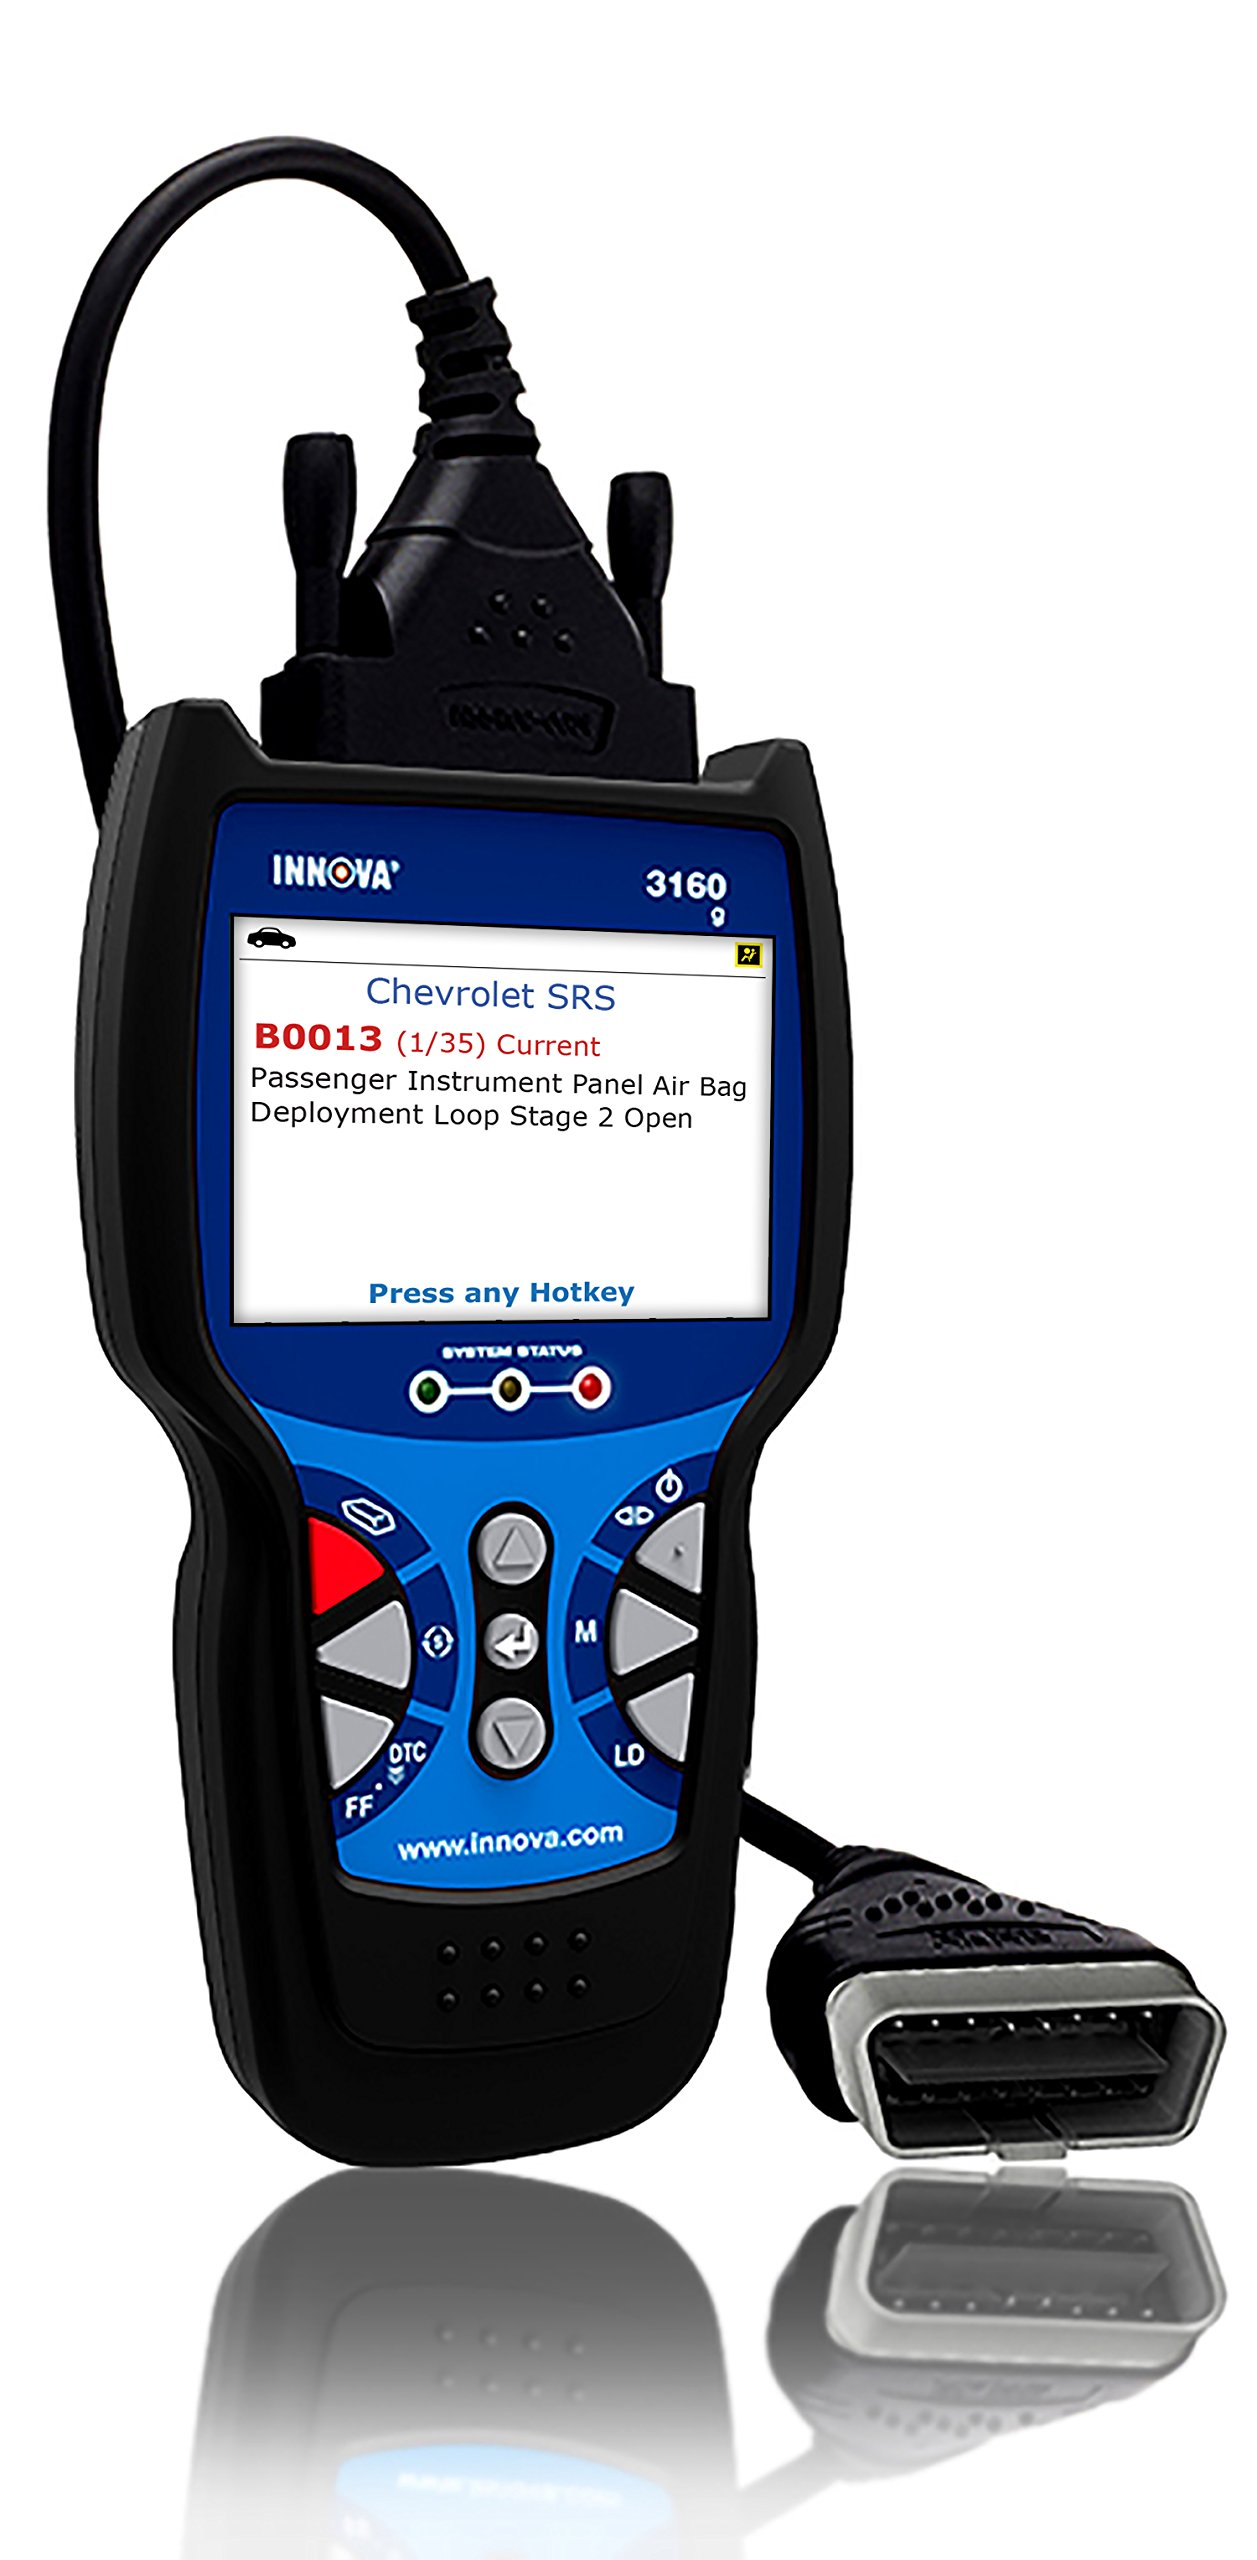 Innova 3160g Code Reader / Scan Tool with 3.5'' Display, ABS, SRS, Bluetooth, and Live Data for OBD2 Vehicles